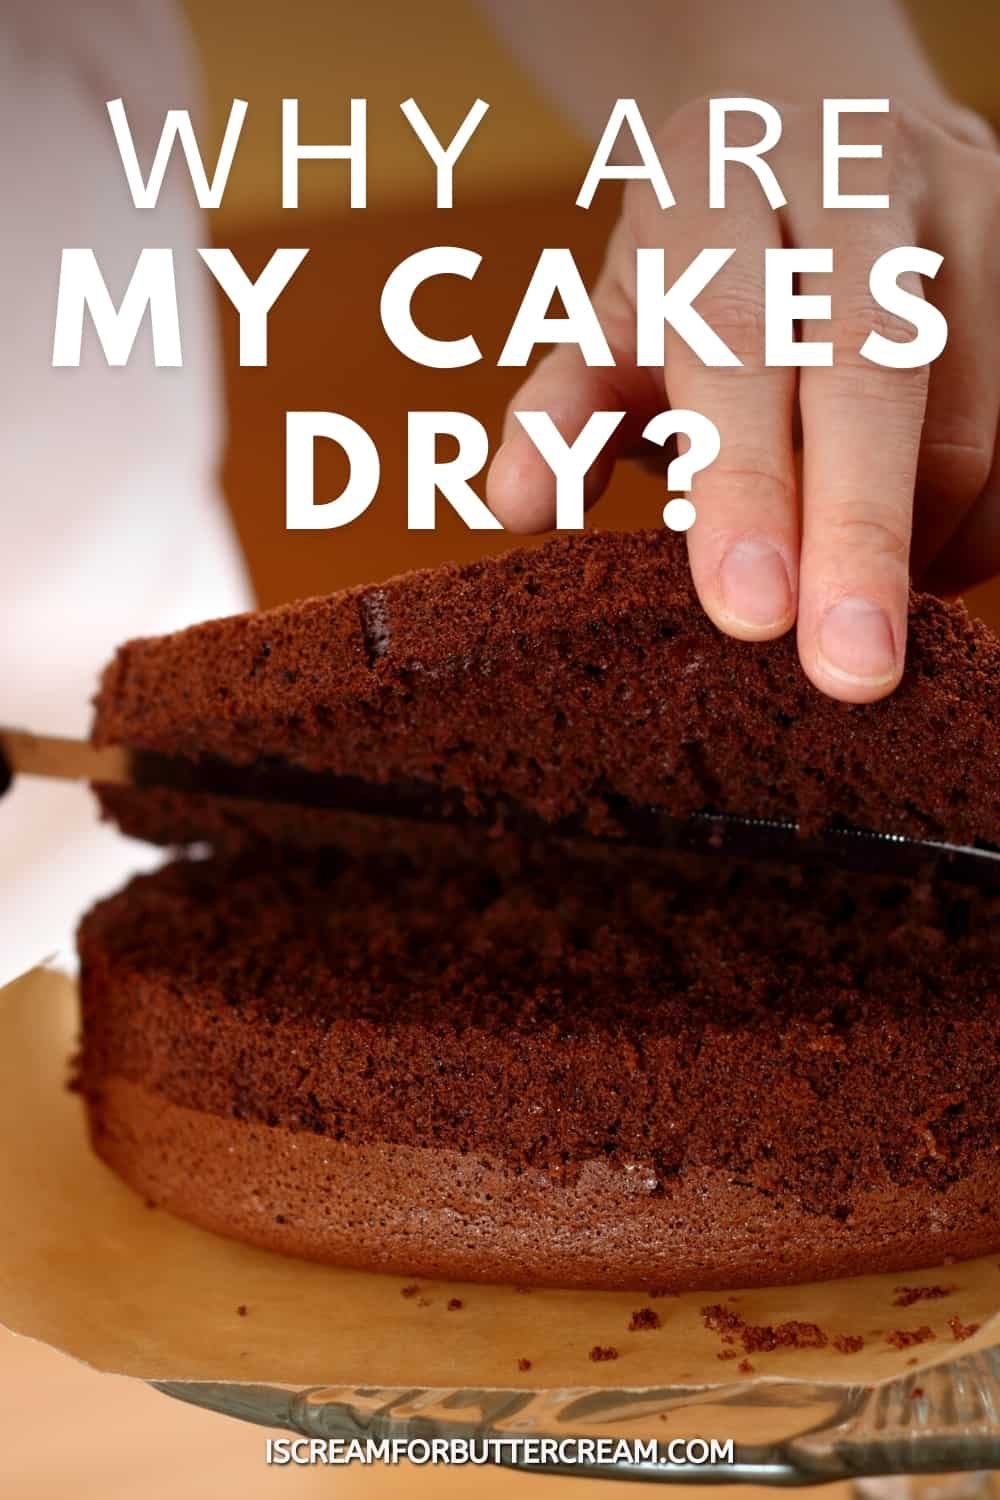 why are my cakes dry title pin graphic